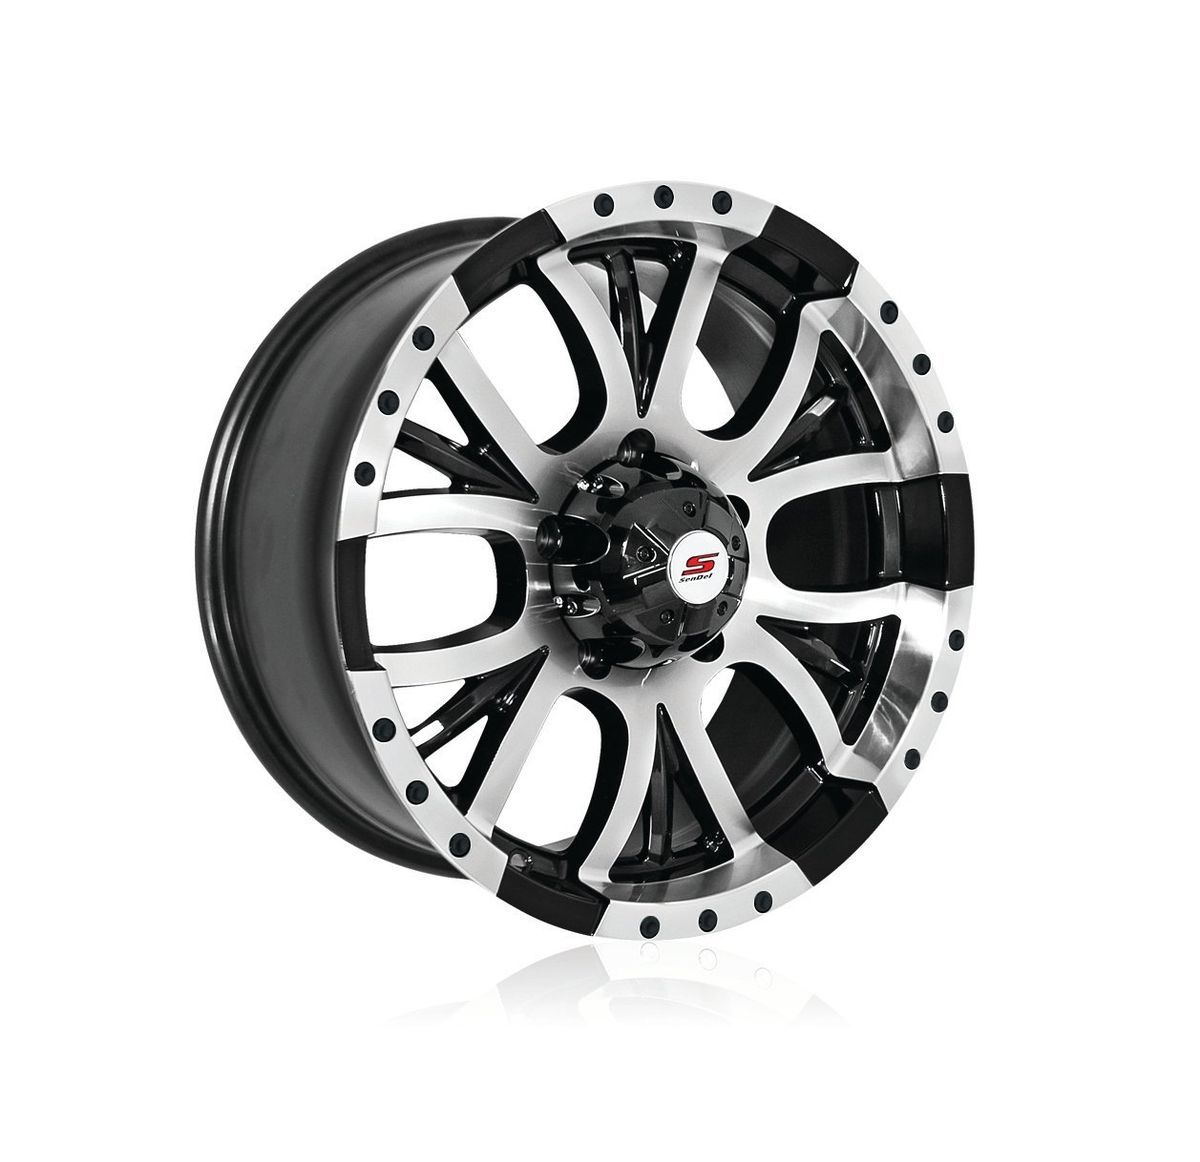 Sendel S13 (Black / Machined) Wheel/Rim(s) 5x114.3 5 114.3 5x4.5 15 8